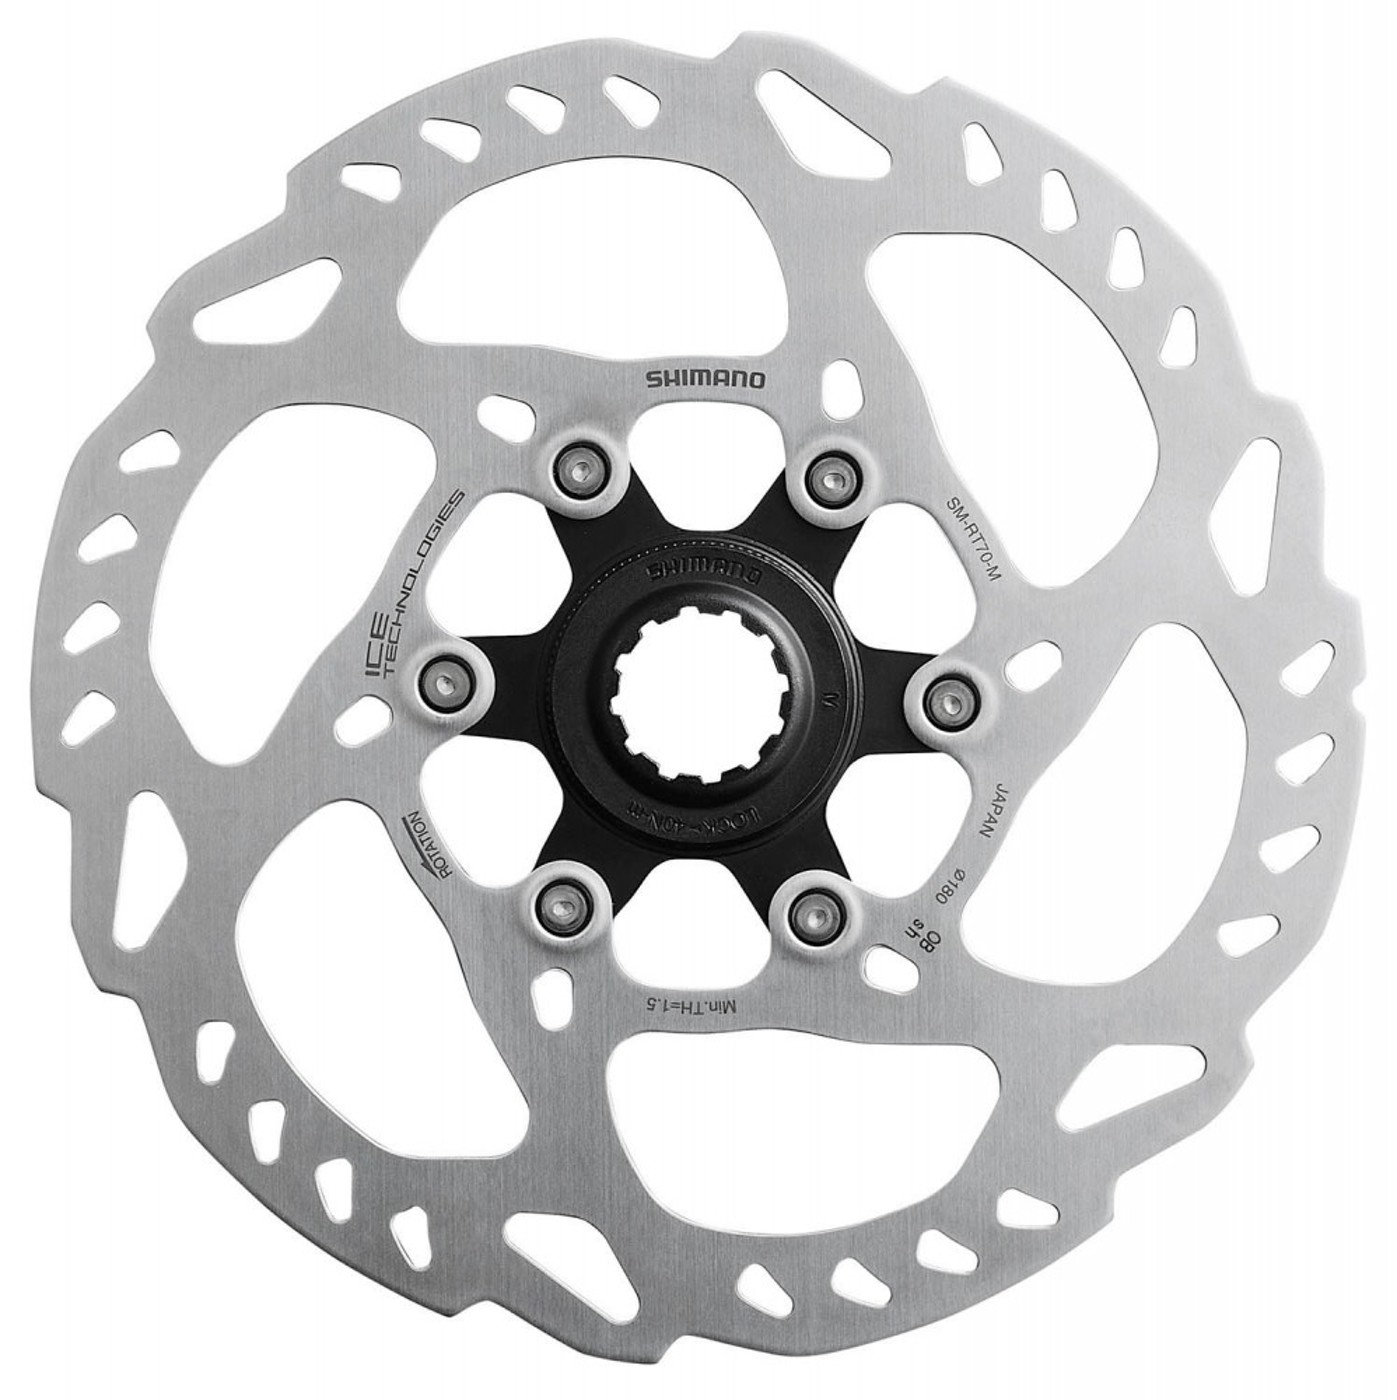 SHIMANO Rotor SMRT70 180mm CL